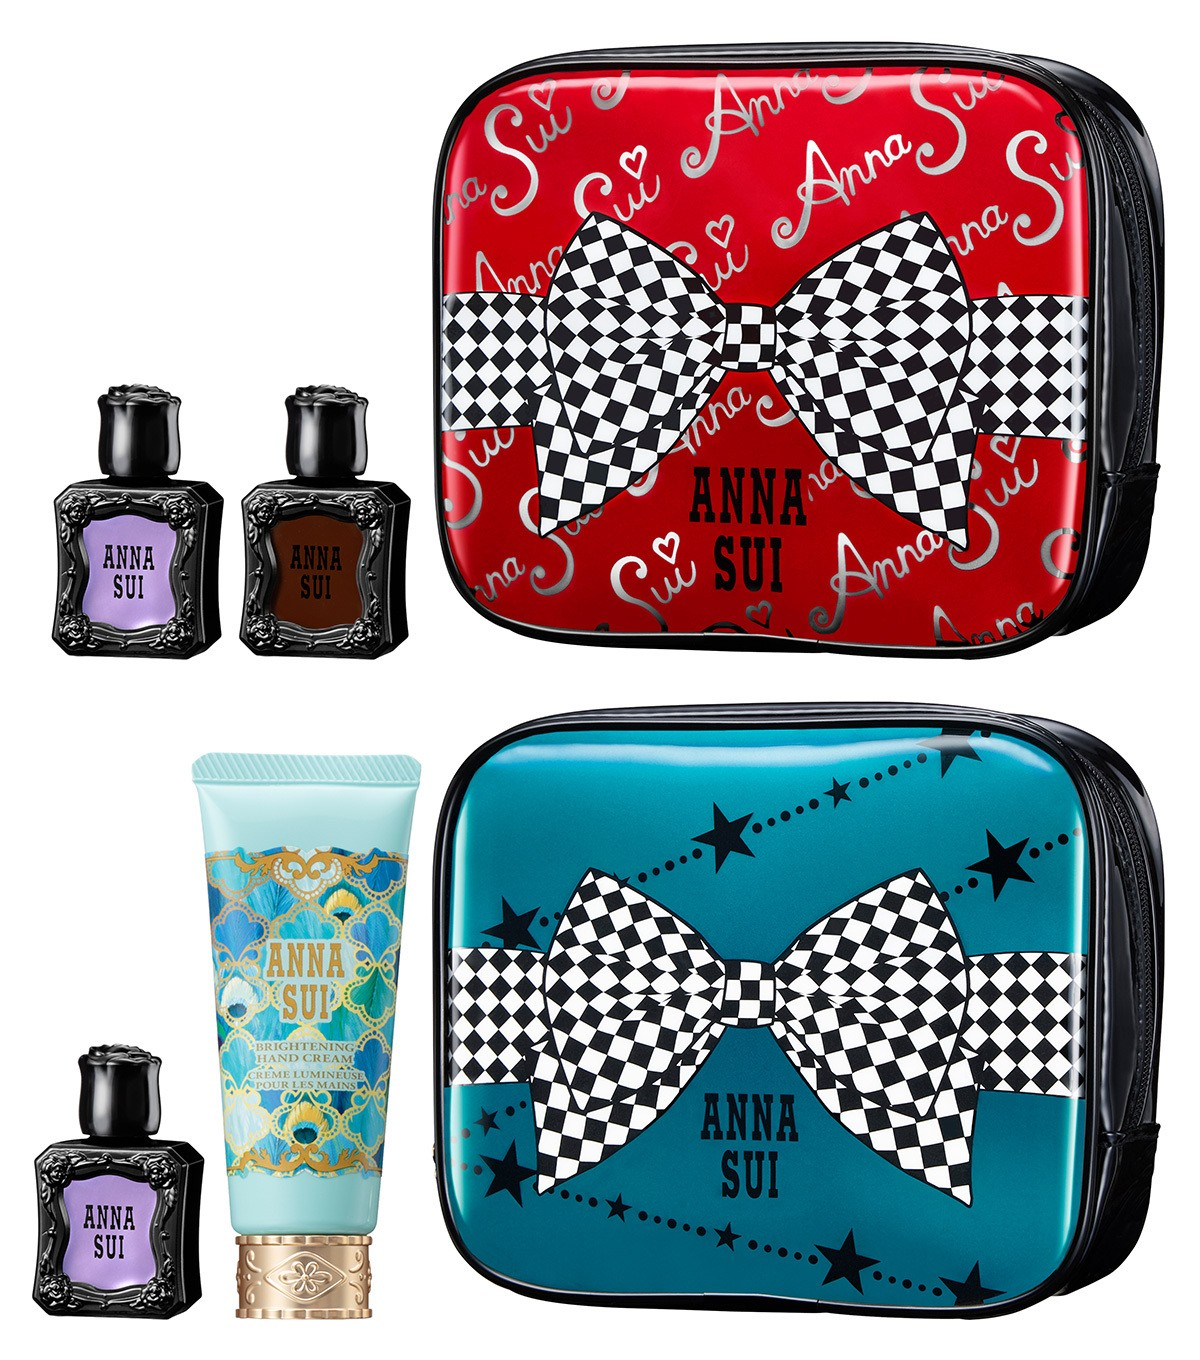 ANNA SUI 2020 NAIL COLLECTION